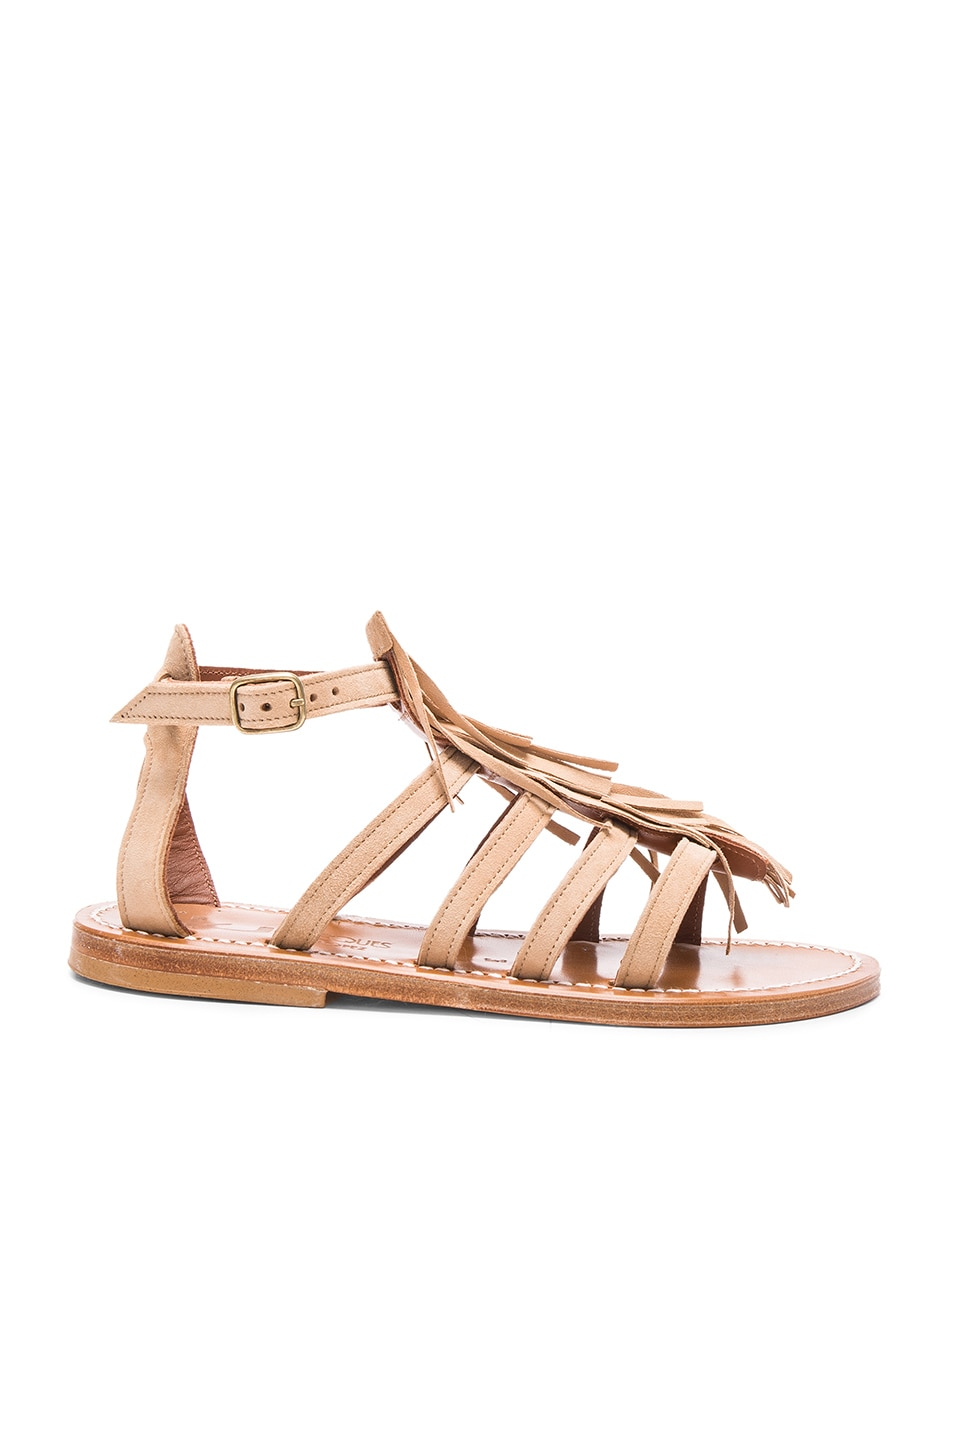 Image 1 of K Jacques Suede Fregate Sandals in Velours Sultan